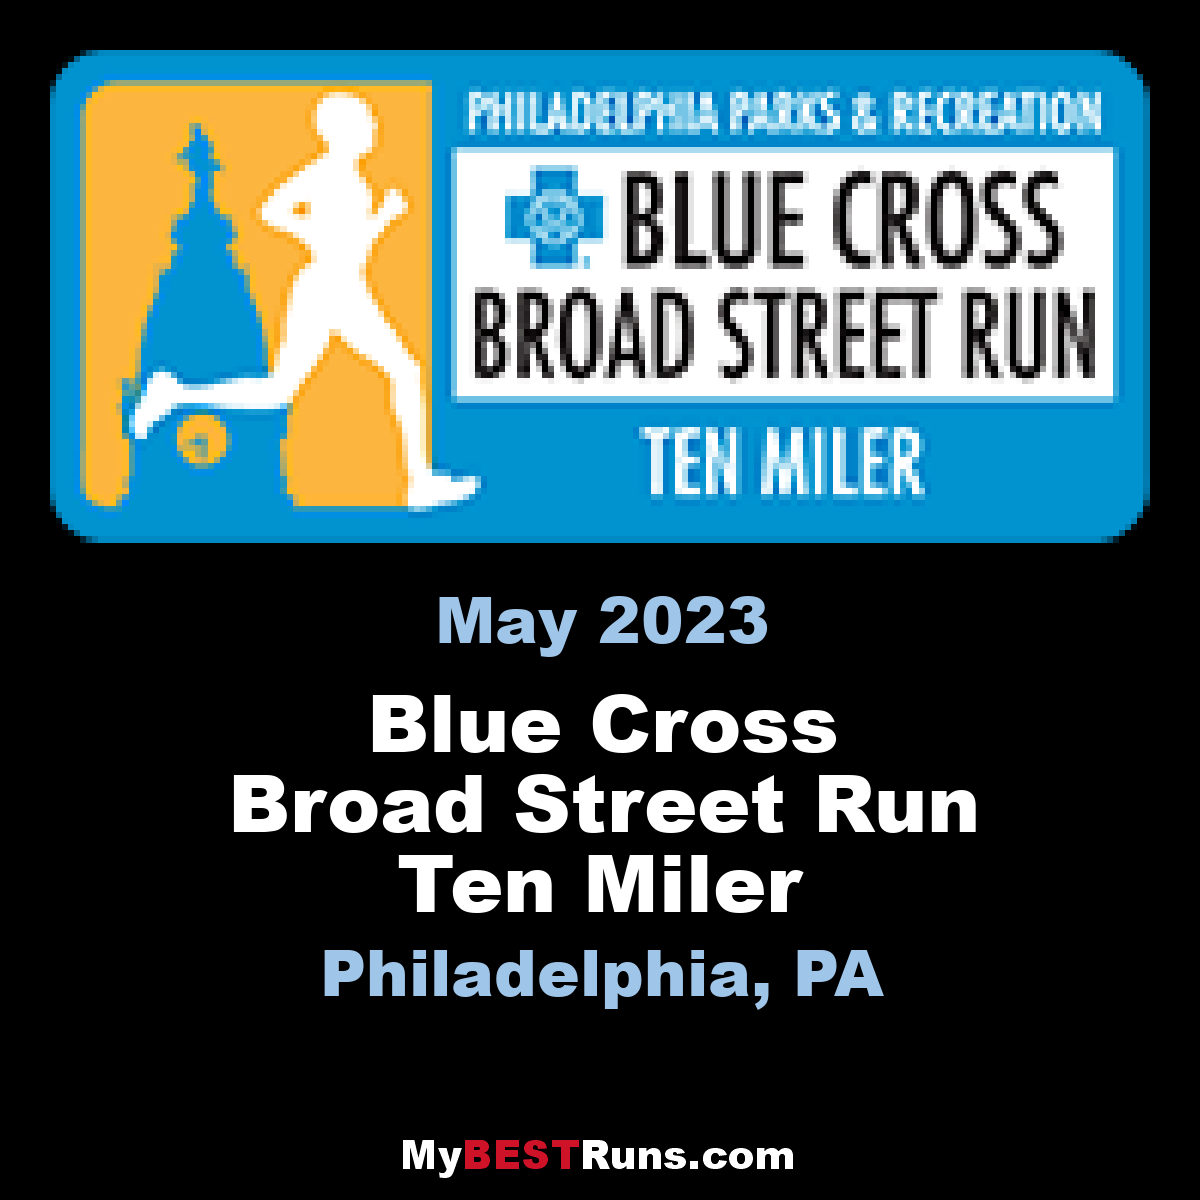 Blue Cross Broad Street Run 10 Mile